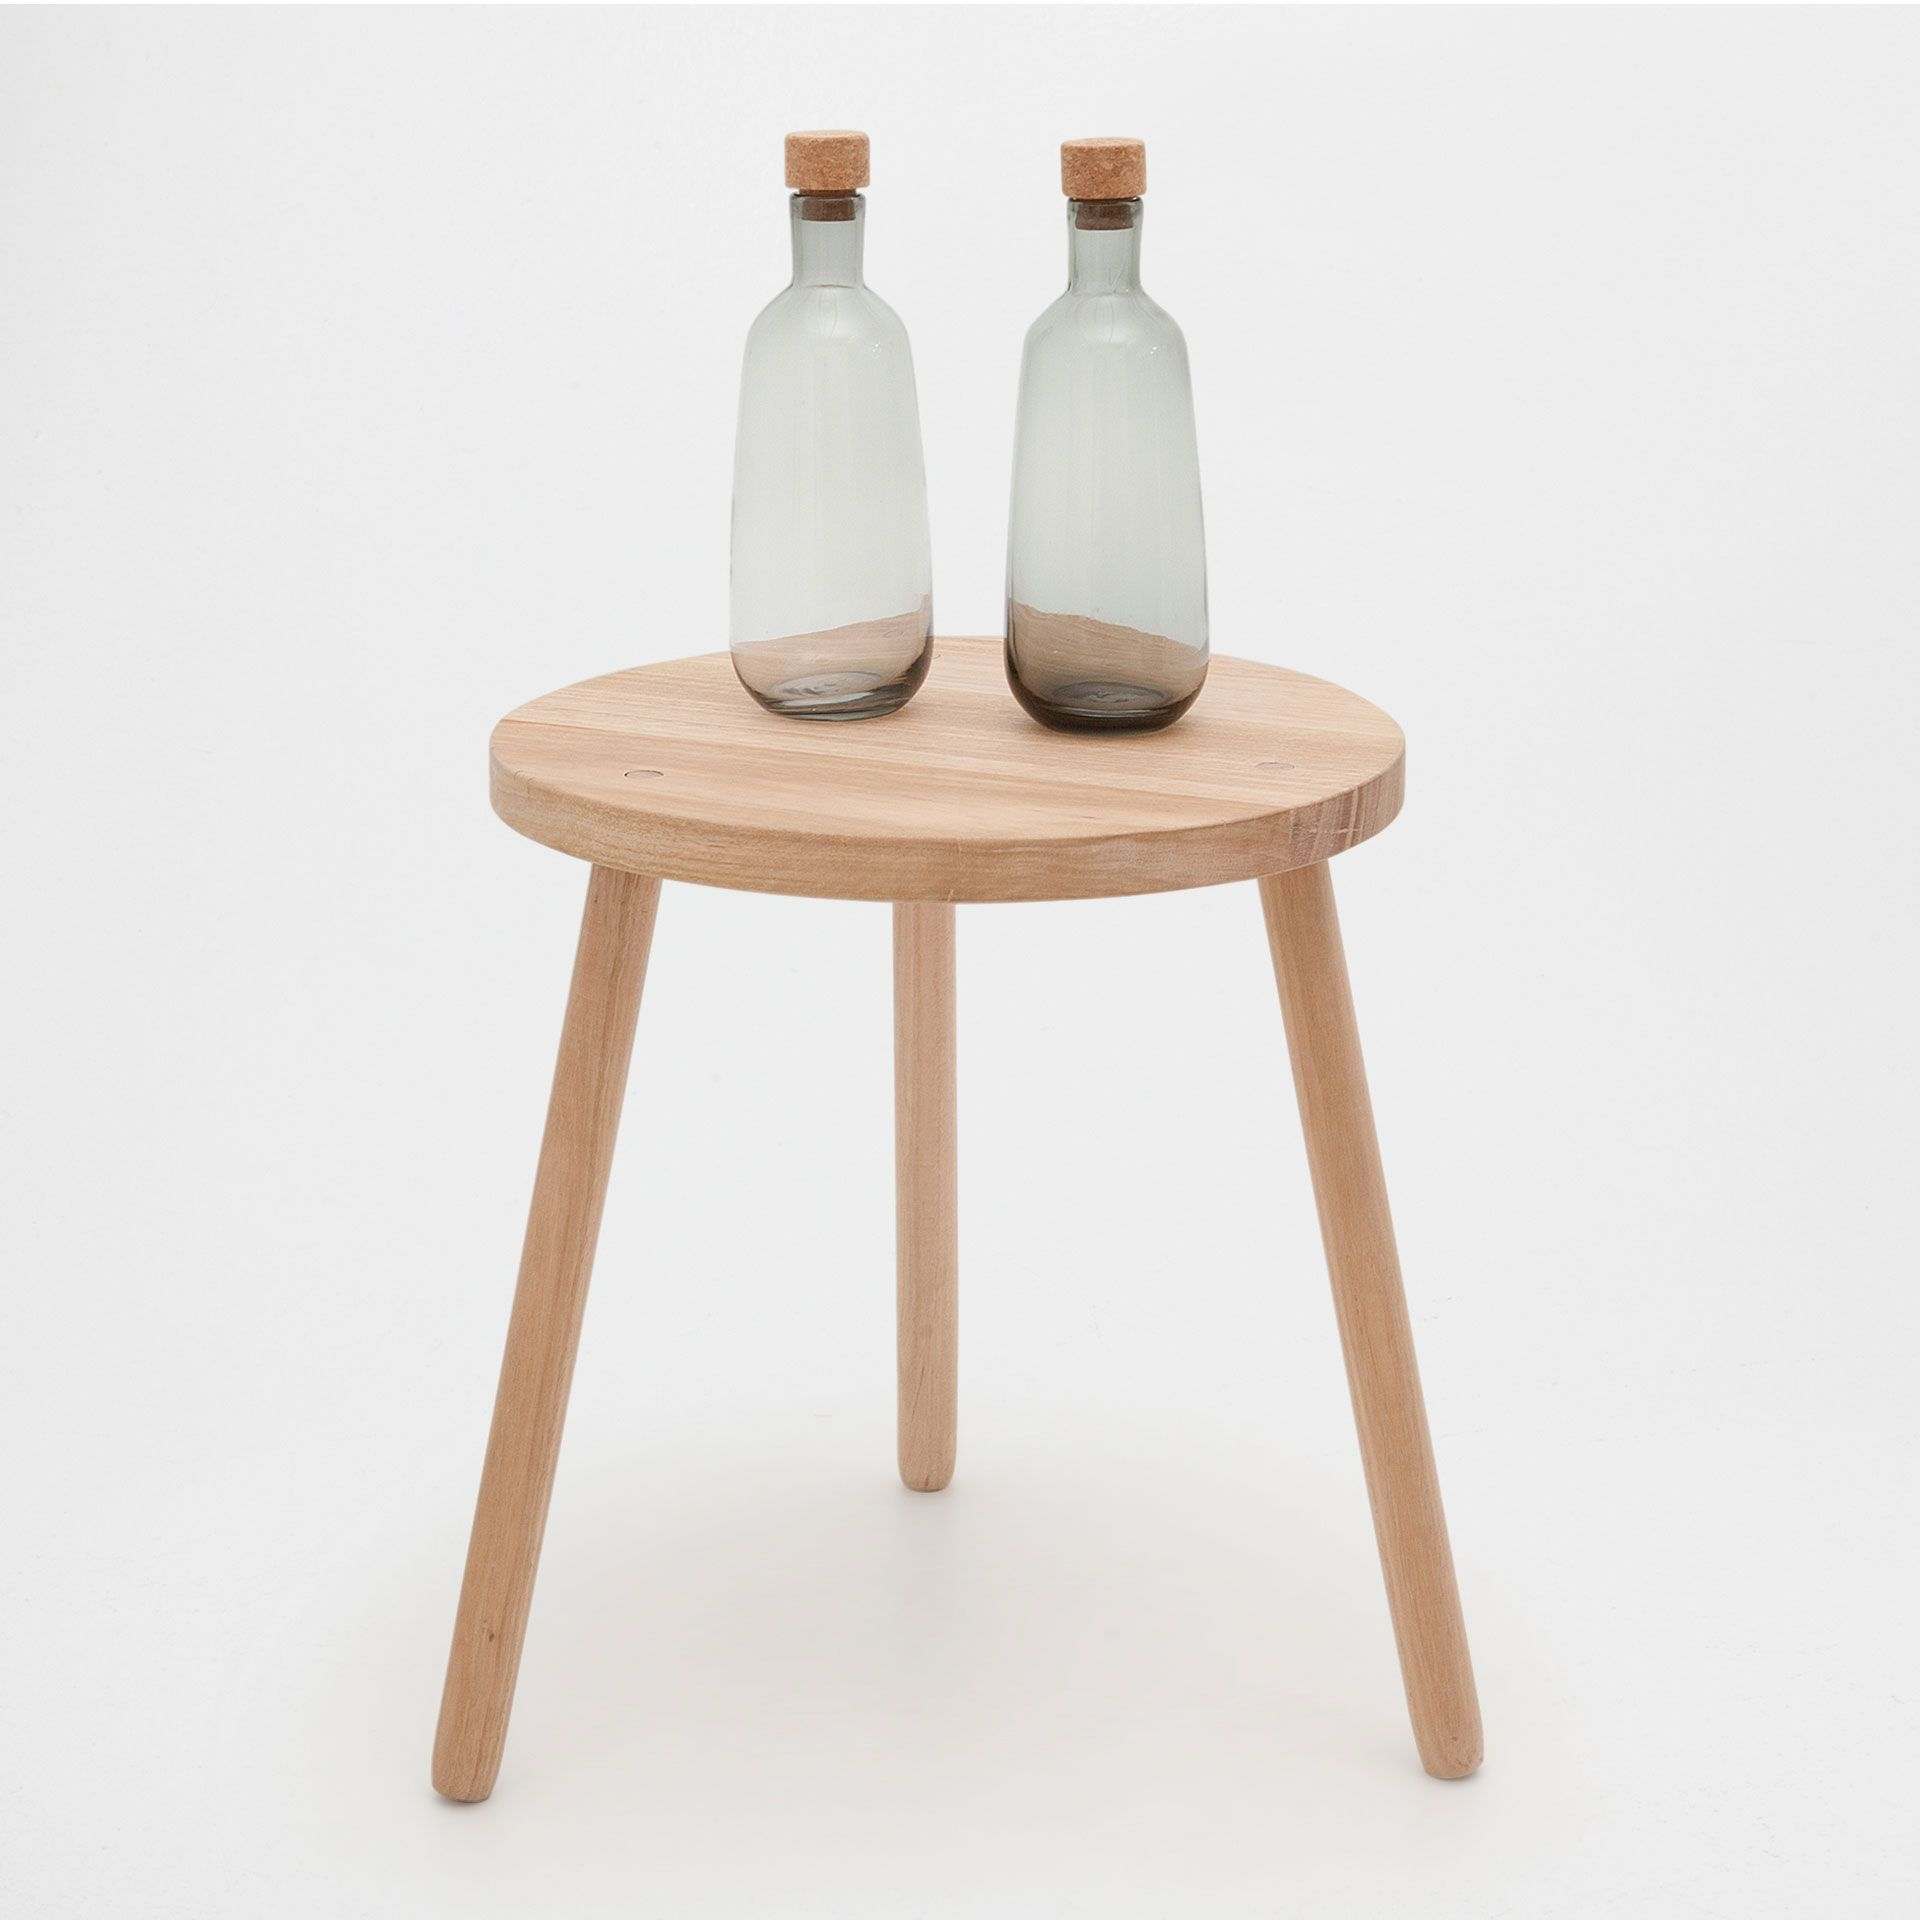 Image 1 Of The Product Three Legged Side Table Zara Home Sale